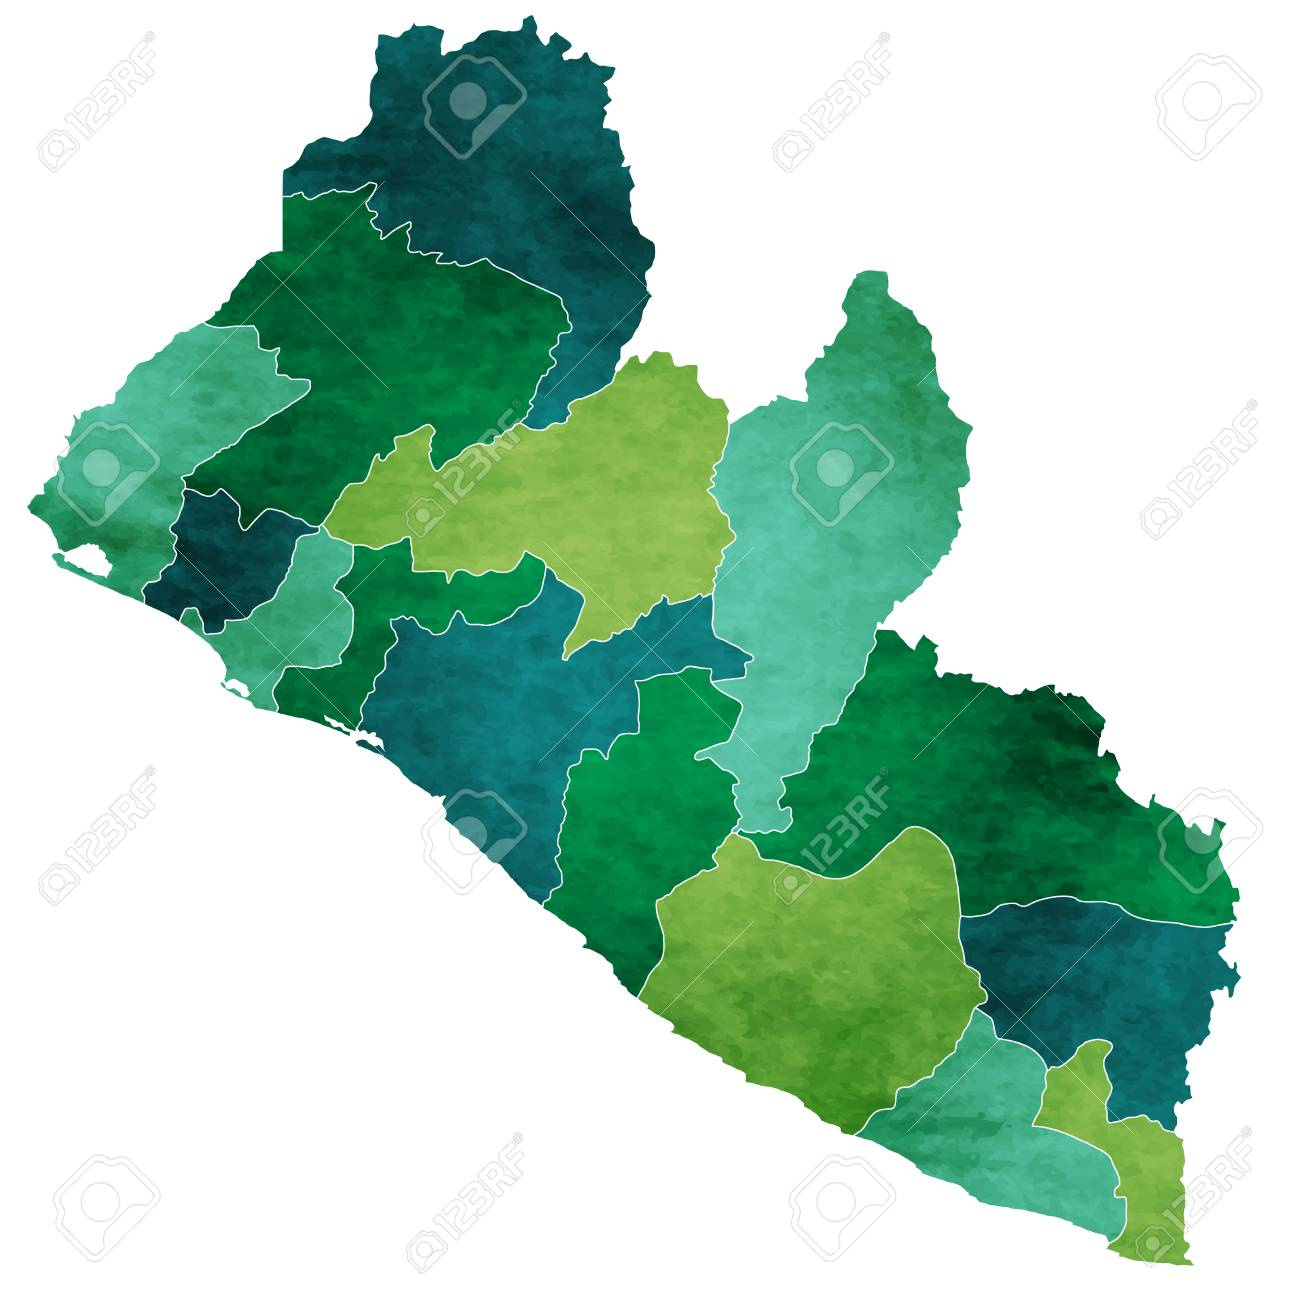 Liberia World Map Country Icon Royalty Free Cliparts Vectors And Stock Illustration Image 93841720